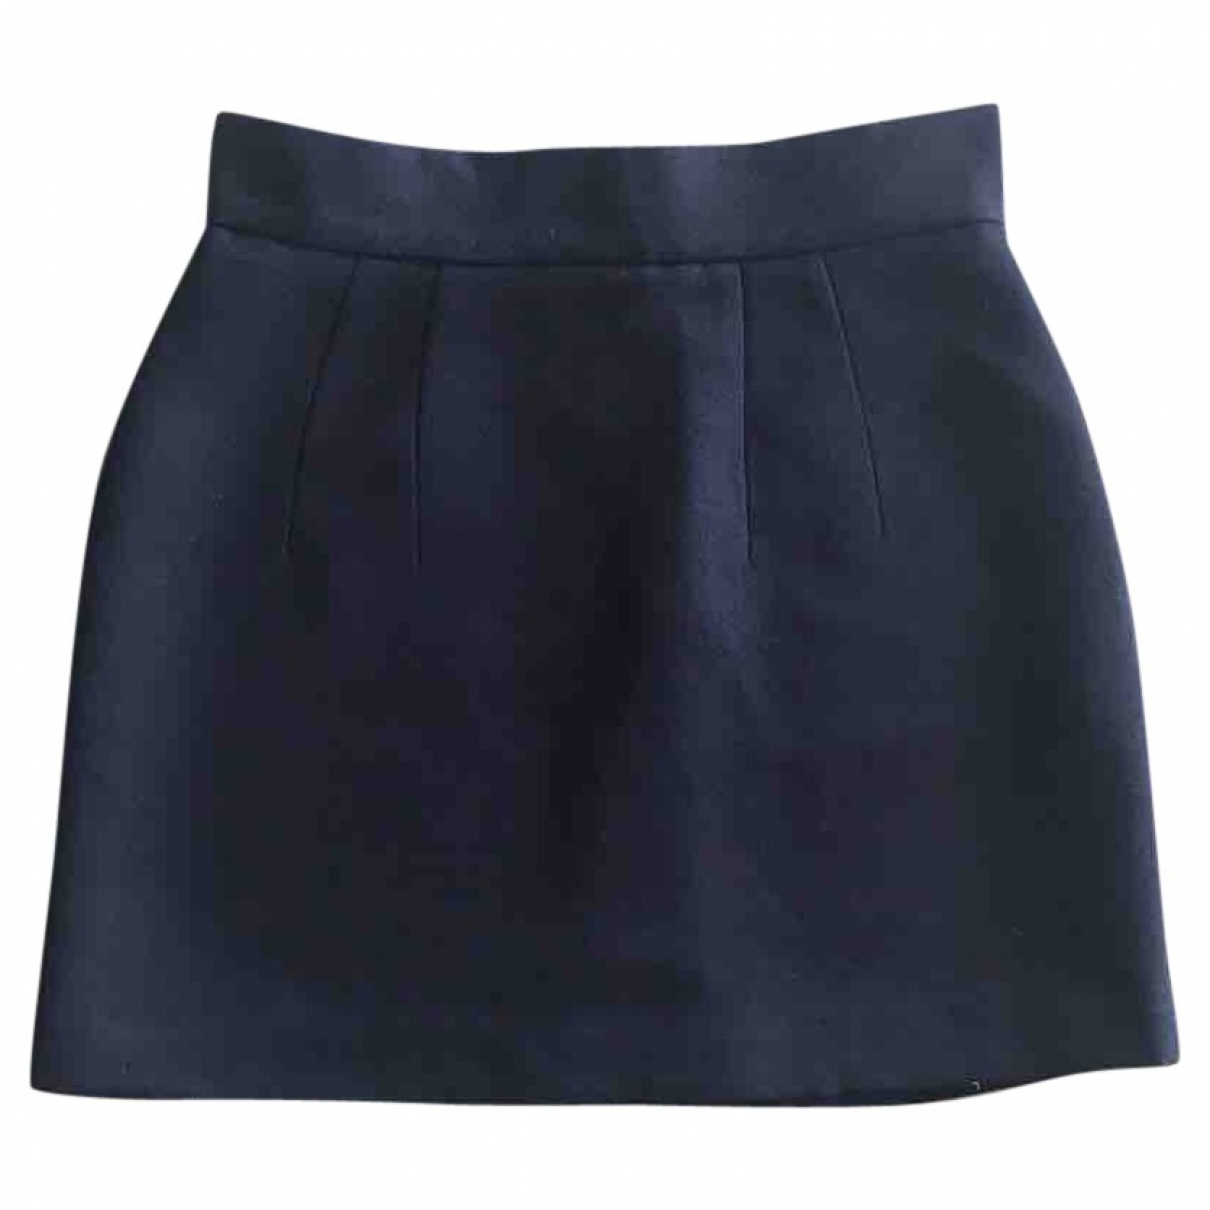 Zara \N Navy skirt for Women XS International